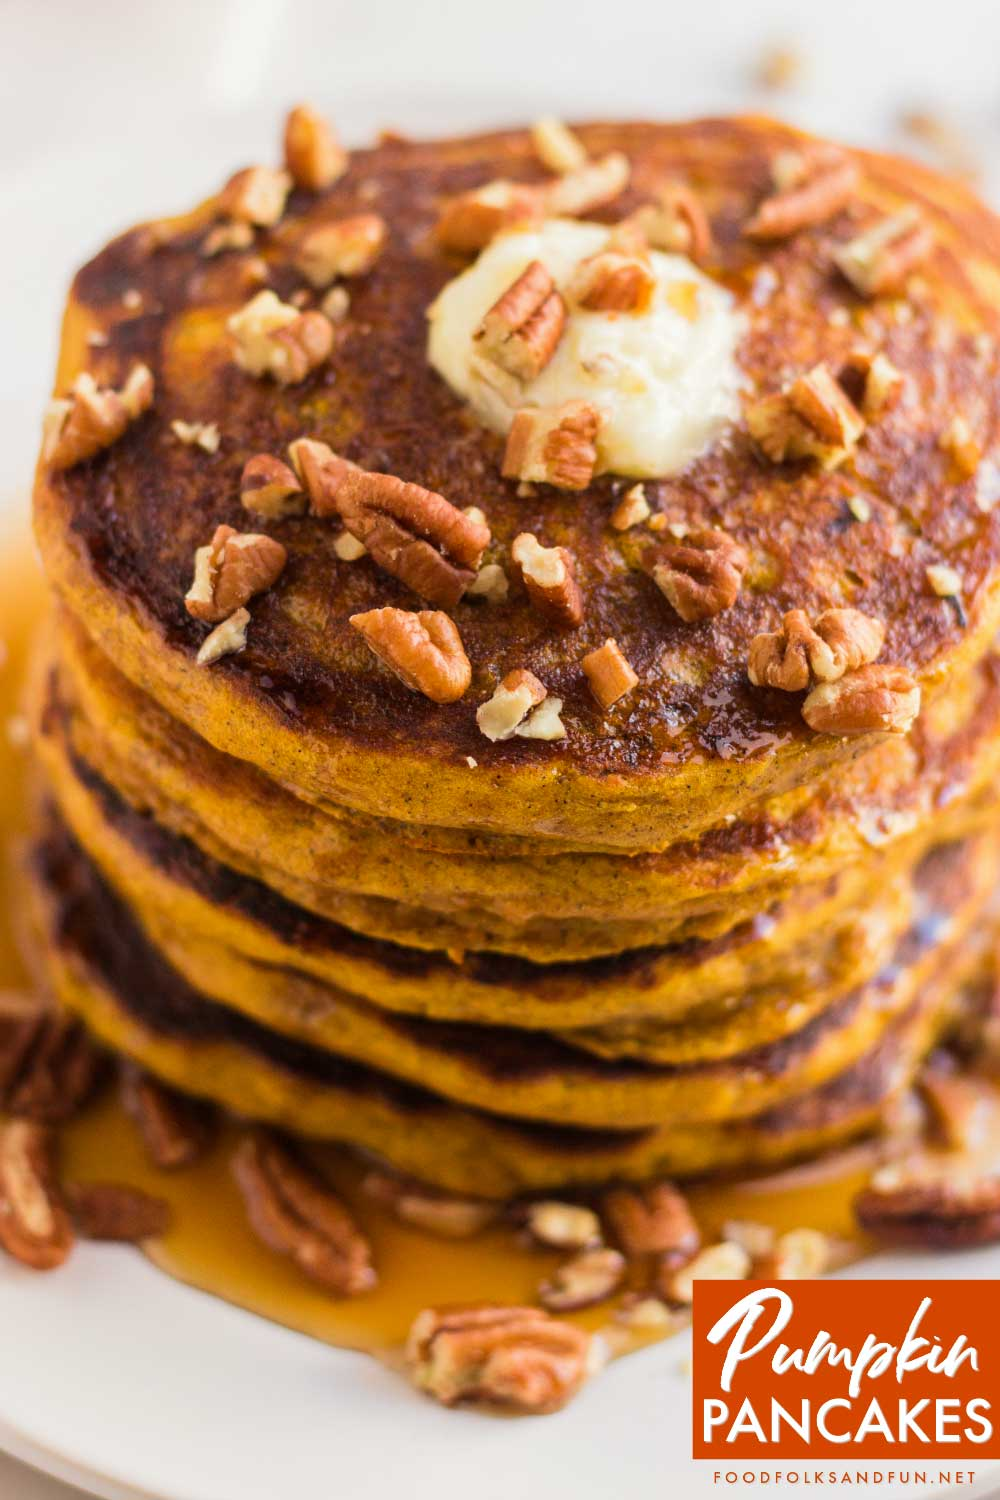 These pancakes have a fluffy, but almost creamy interior. They're definitely a treat for special Fall weekend or holidays as they're some serious comfort food!